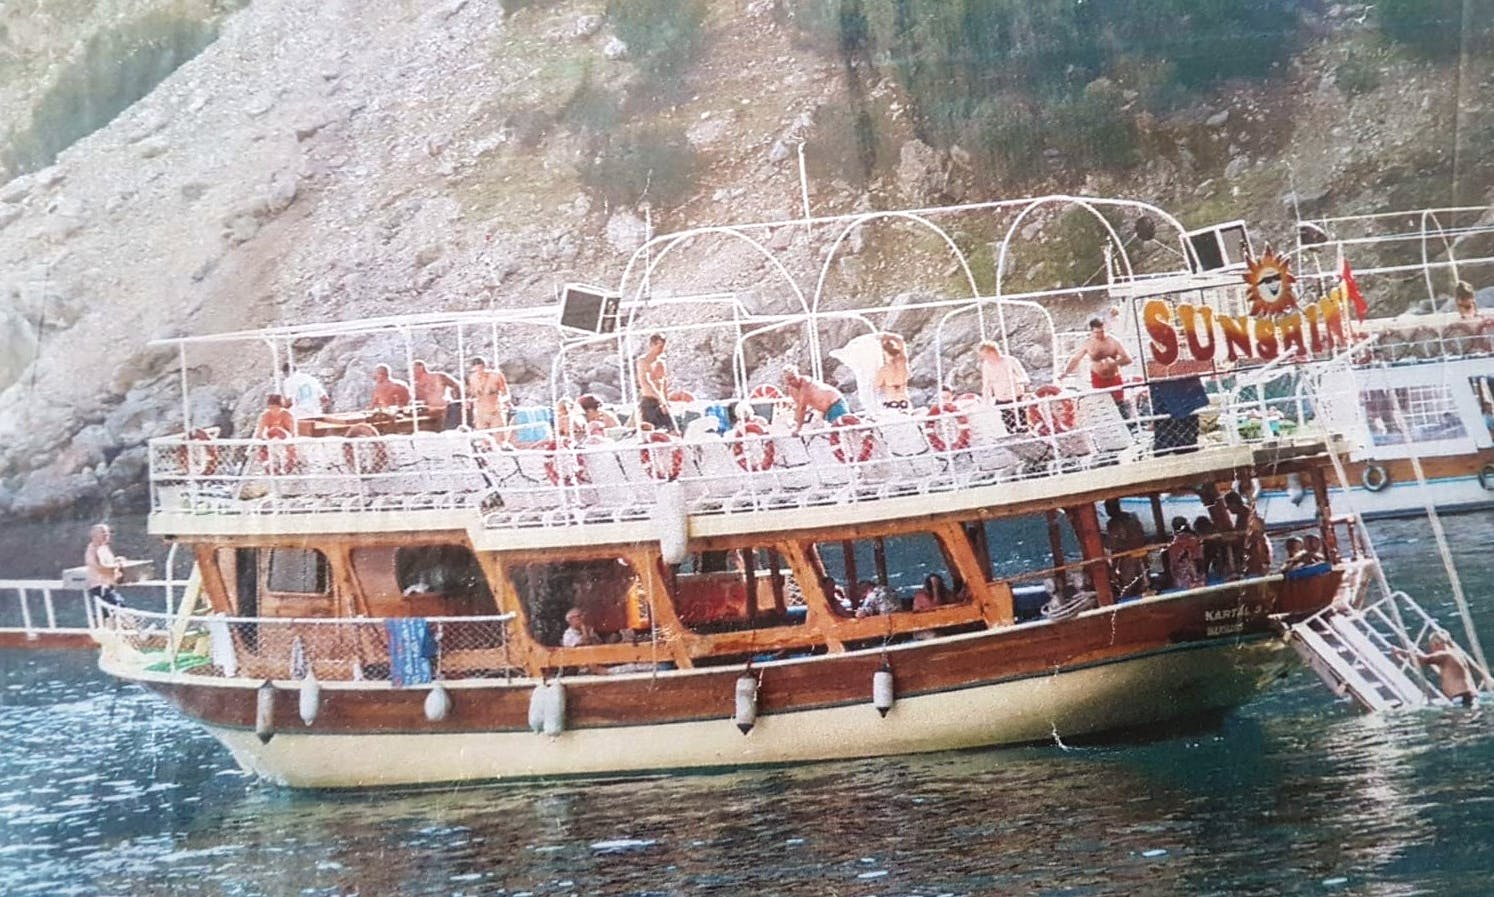 Traditional Boat Trips for Up to 50 People in Muğla, Turkey!